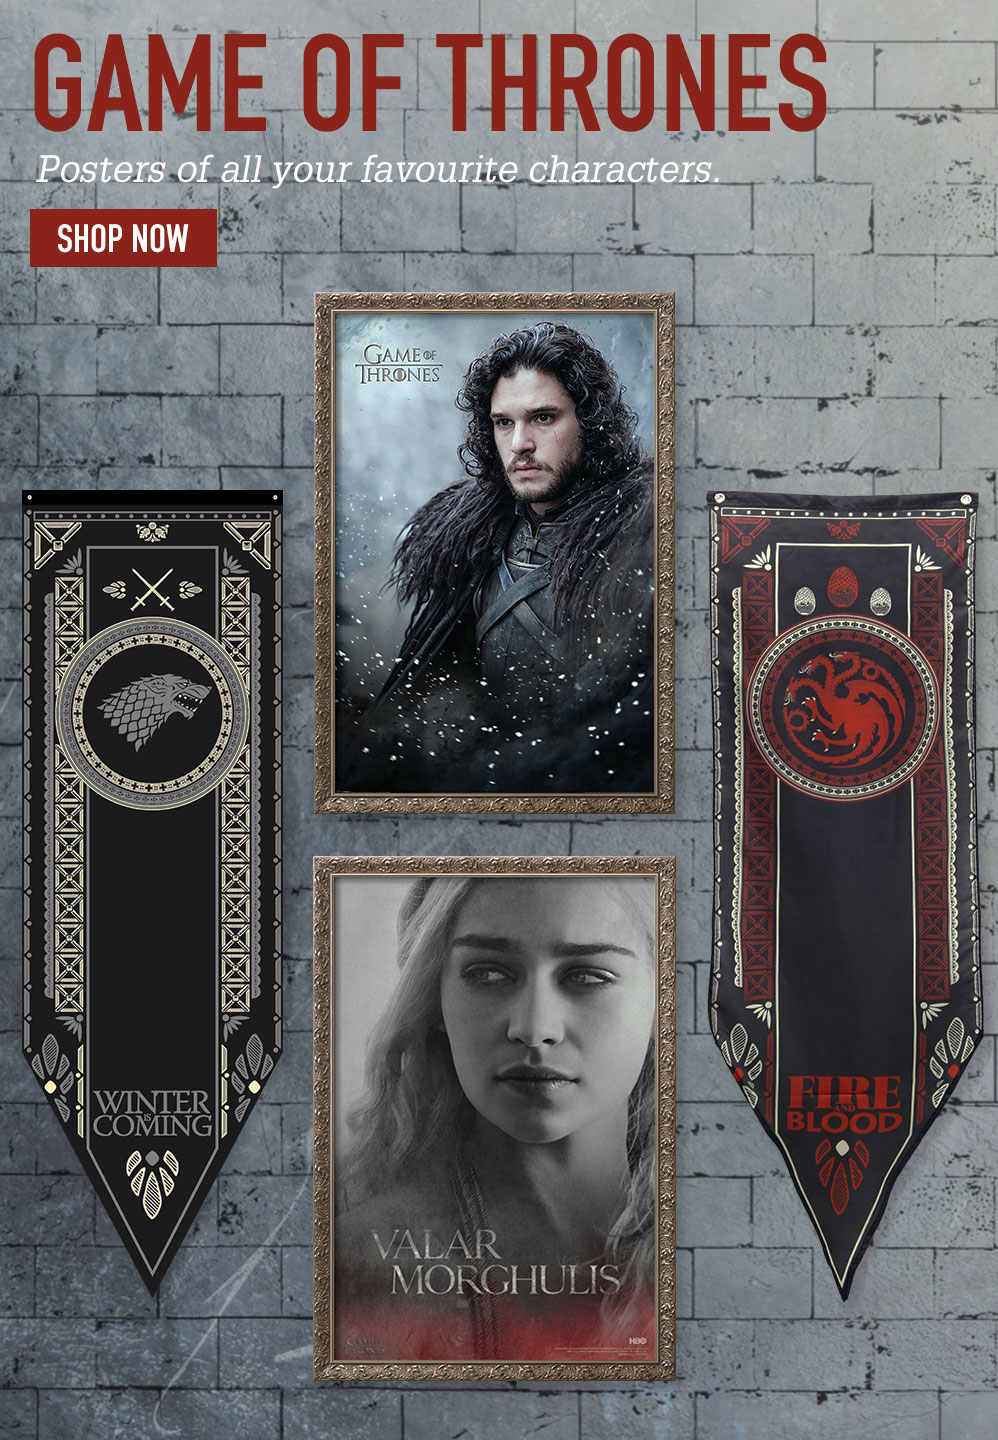 GAME OF THRONES. Posters of all your favourite characters. SHOP NOW